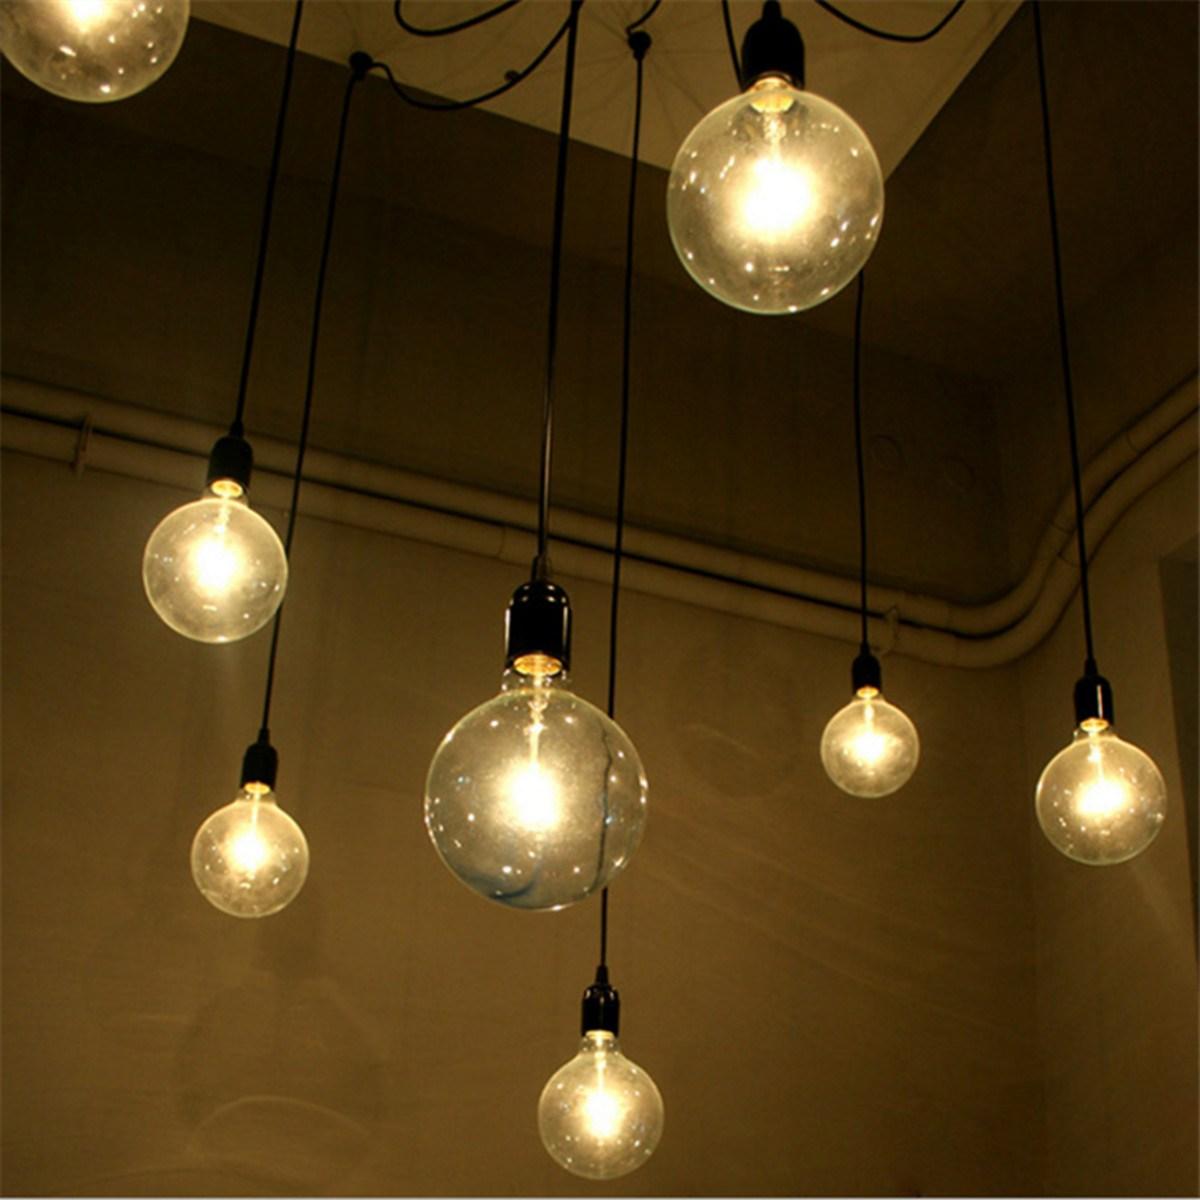 Modern Retro DIY 8 Pendant Lights Hanging E27 Edison Bulb Spider Night Lamp Fixture Living Room Home Decor Novelty Lighting In From